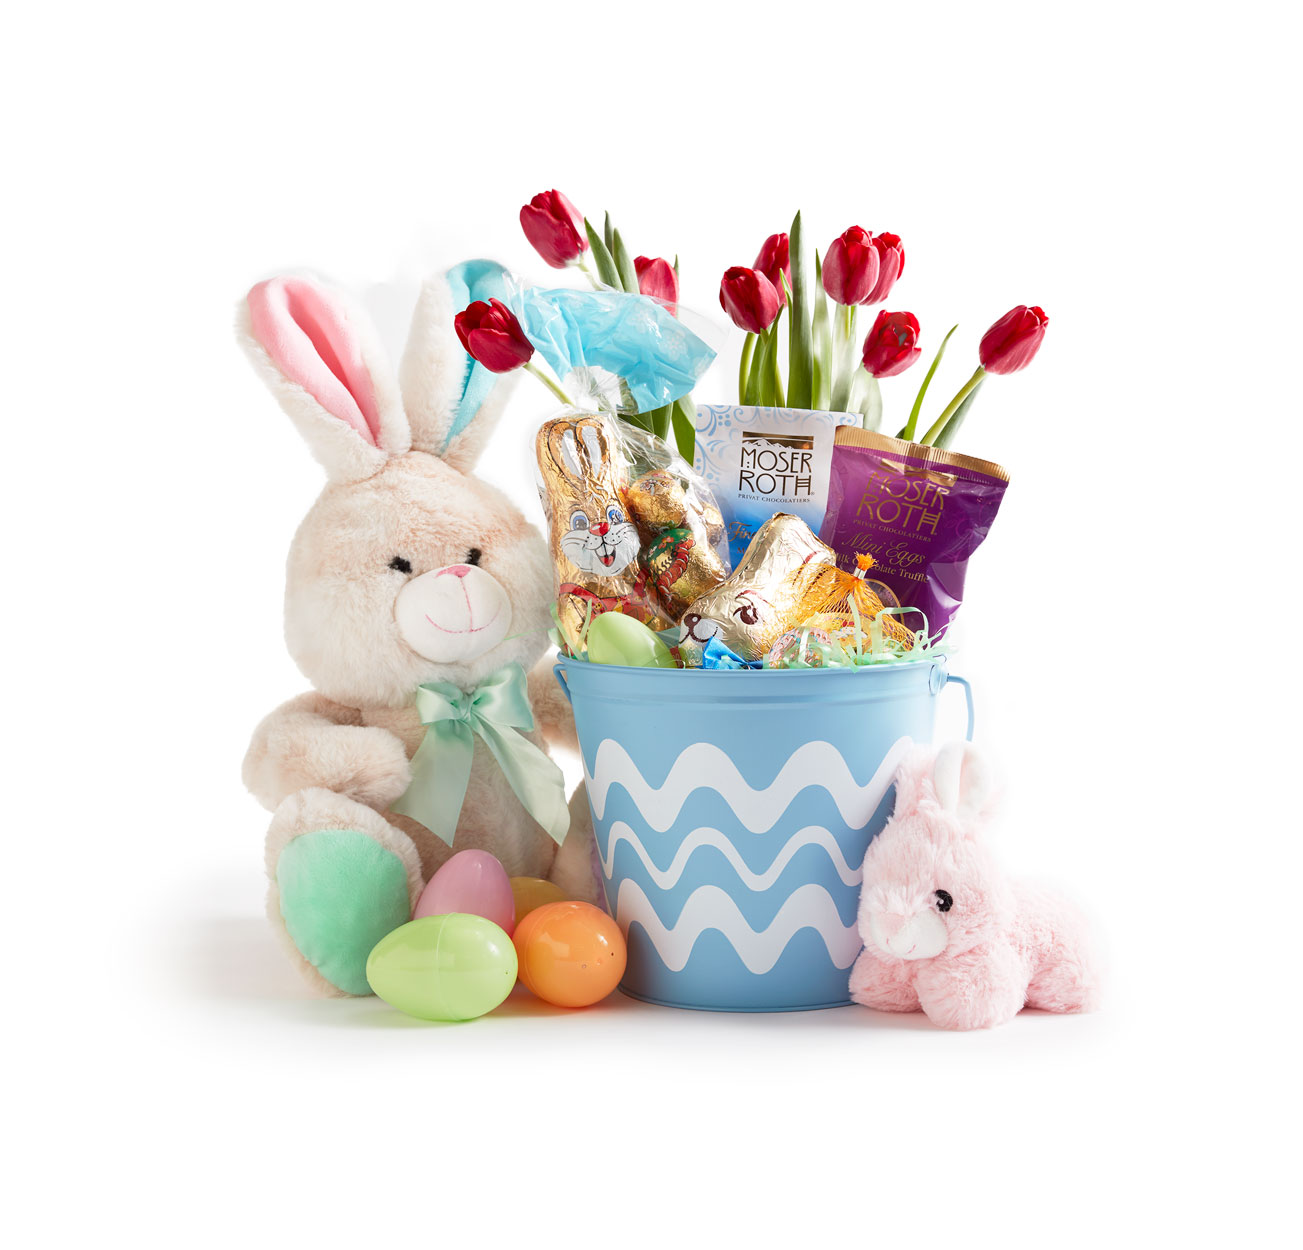 A kids Easter basket featuring chocolate, tulips and plush rabbits.